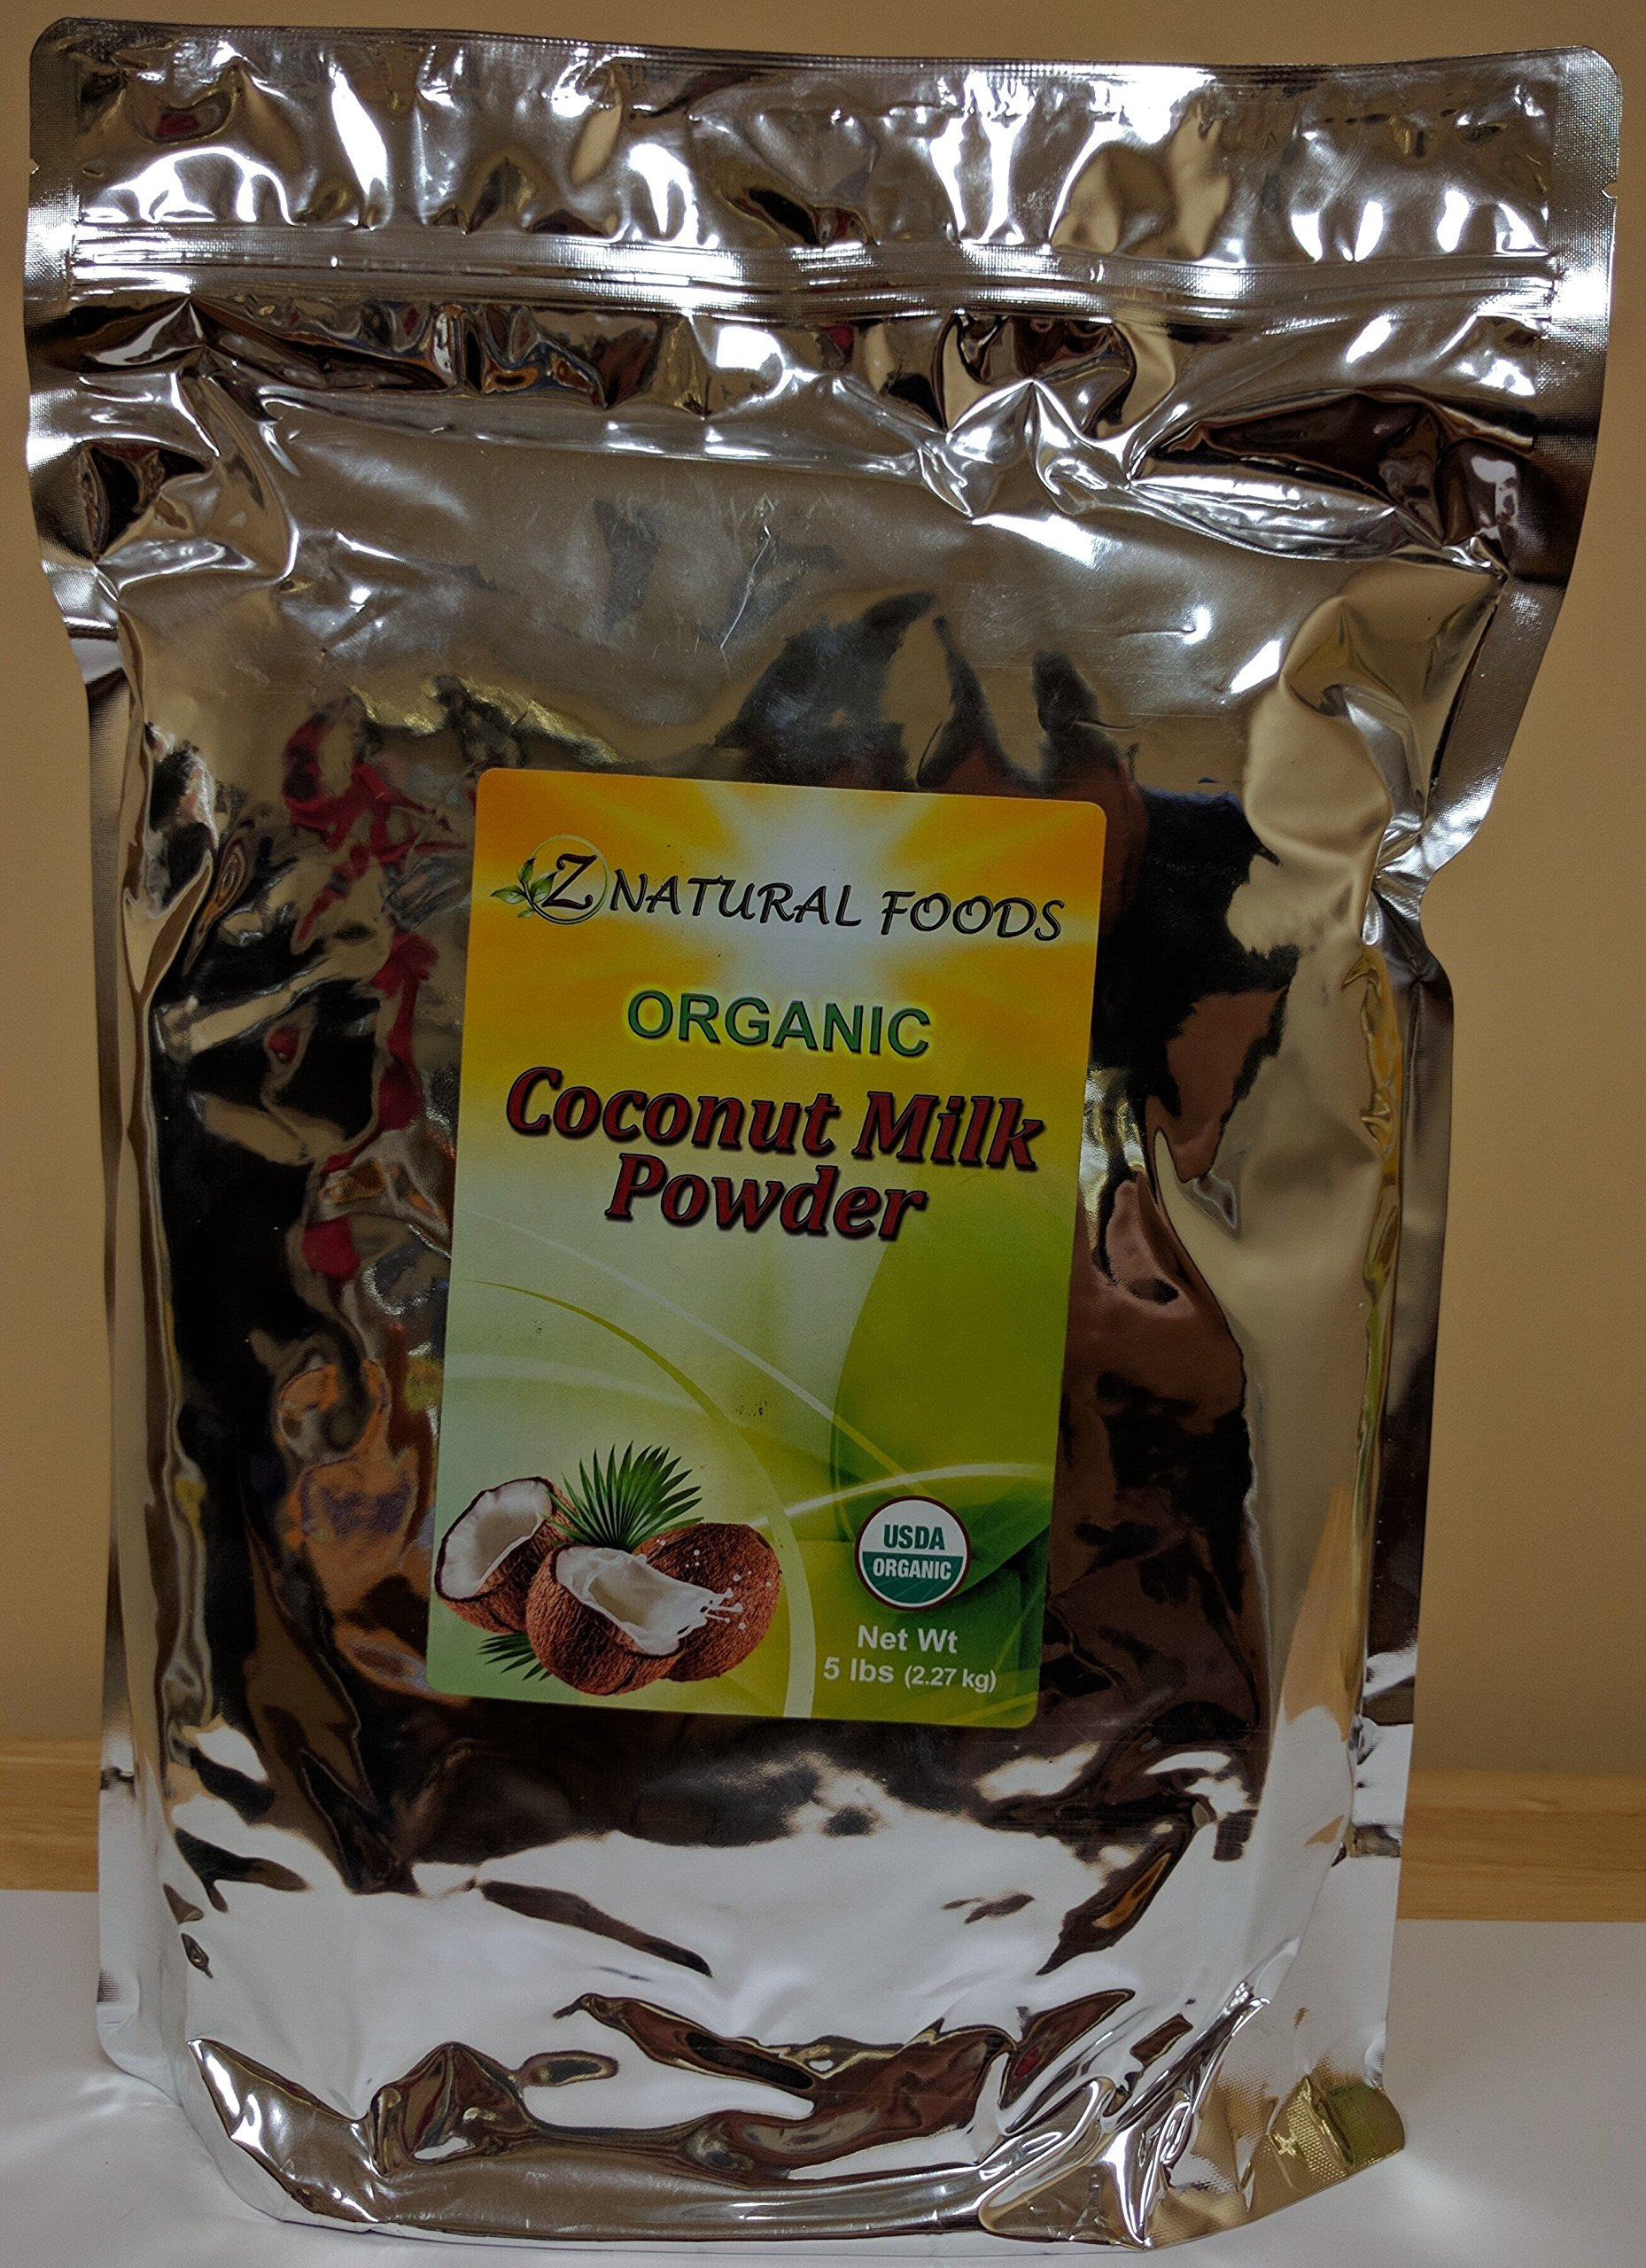 Z Natural Foods - Organic Coconut Milk Powder - Kosher, Vegan, Fresh, Gluten Free, All-Natural, Dairy Free, Non-GMO, Keto, Paleo Diet Friendly (5 lbs) by Z Natural Foods